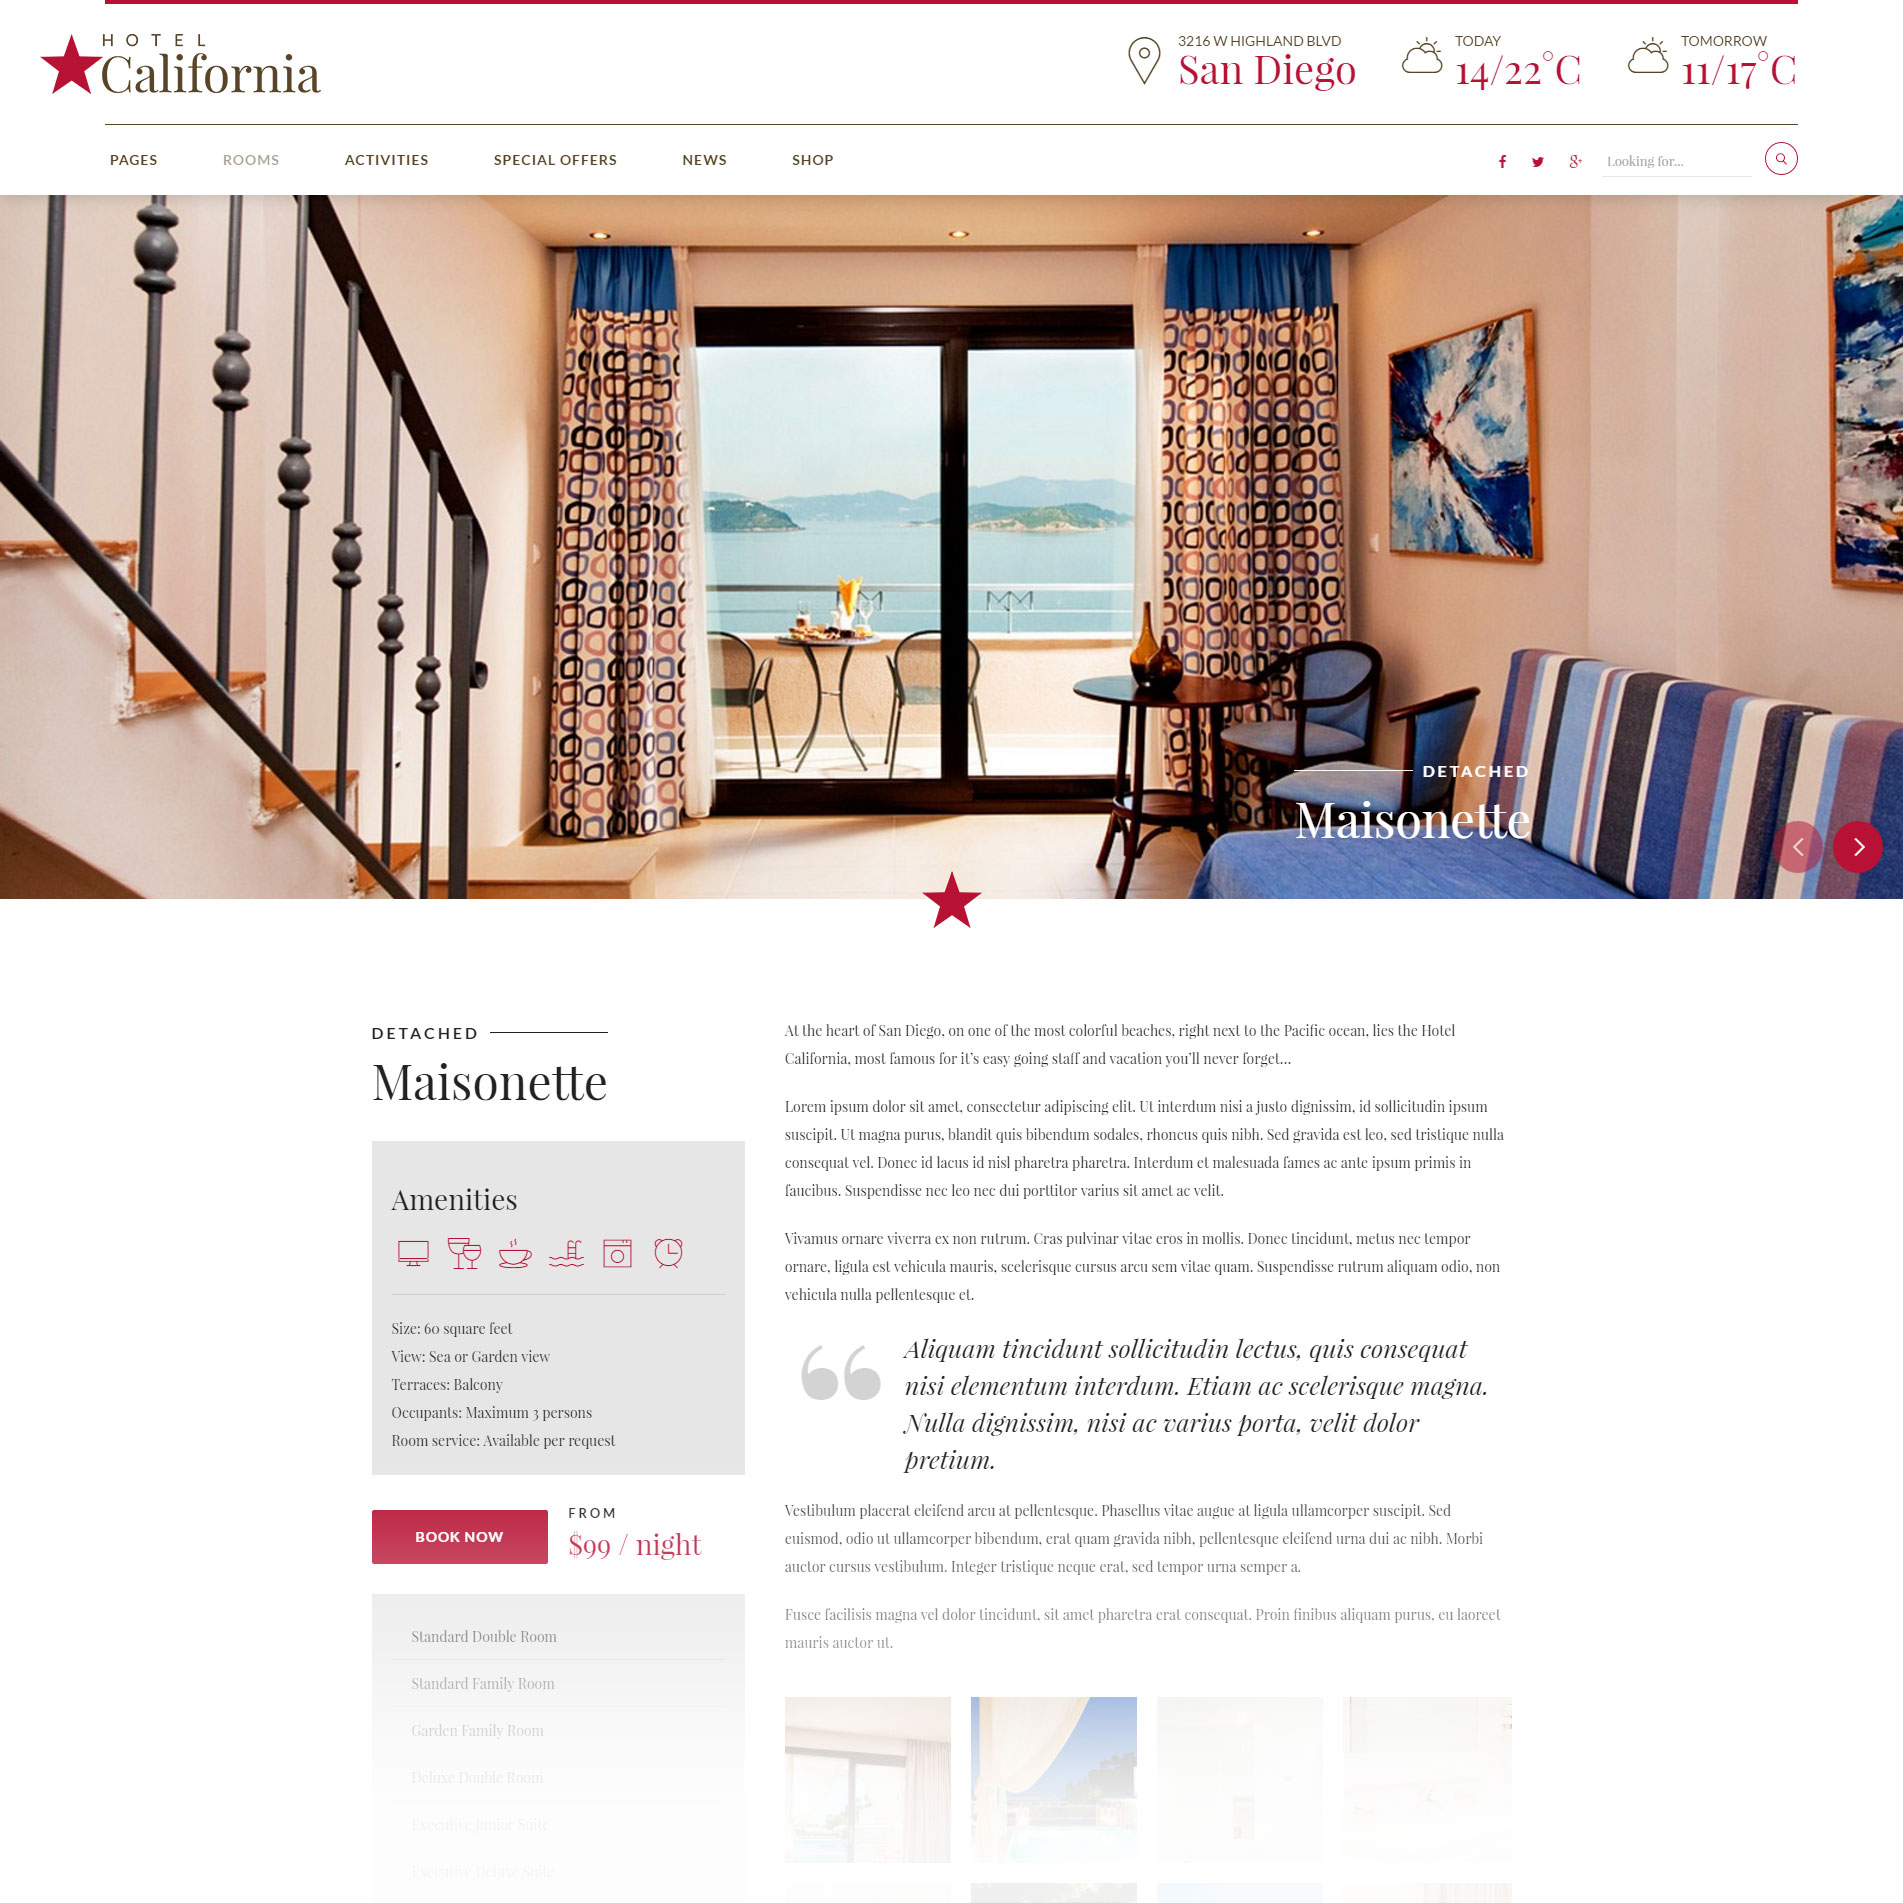 http://hotel.bold-themes.com/wp-content/uploads/2016/03/screenshot-03.jpg